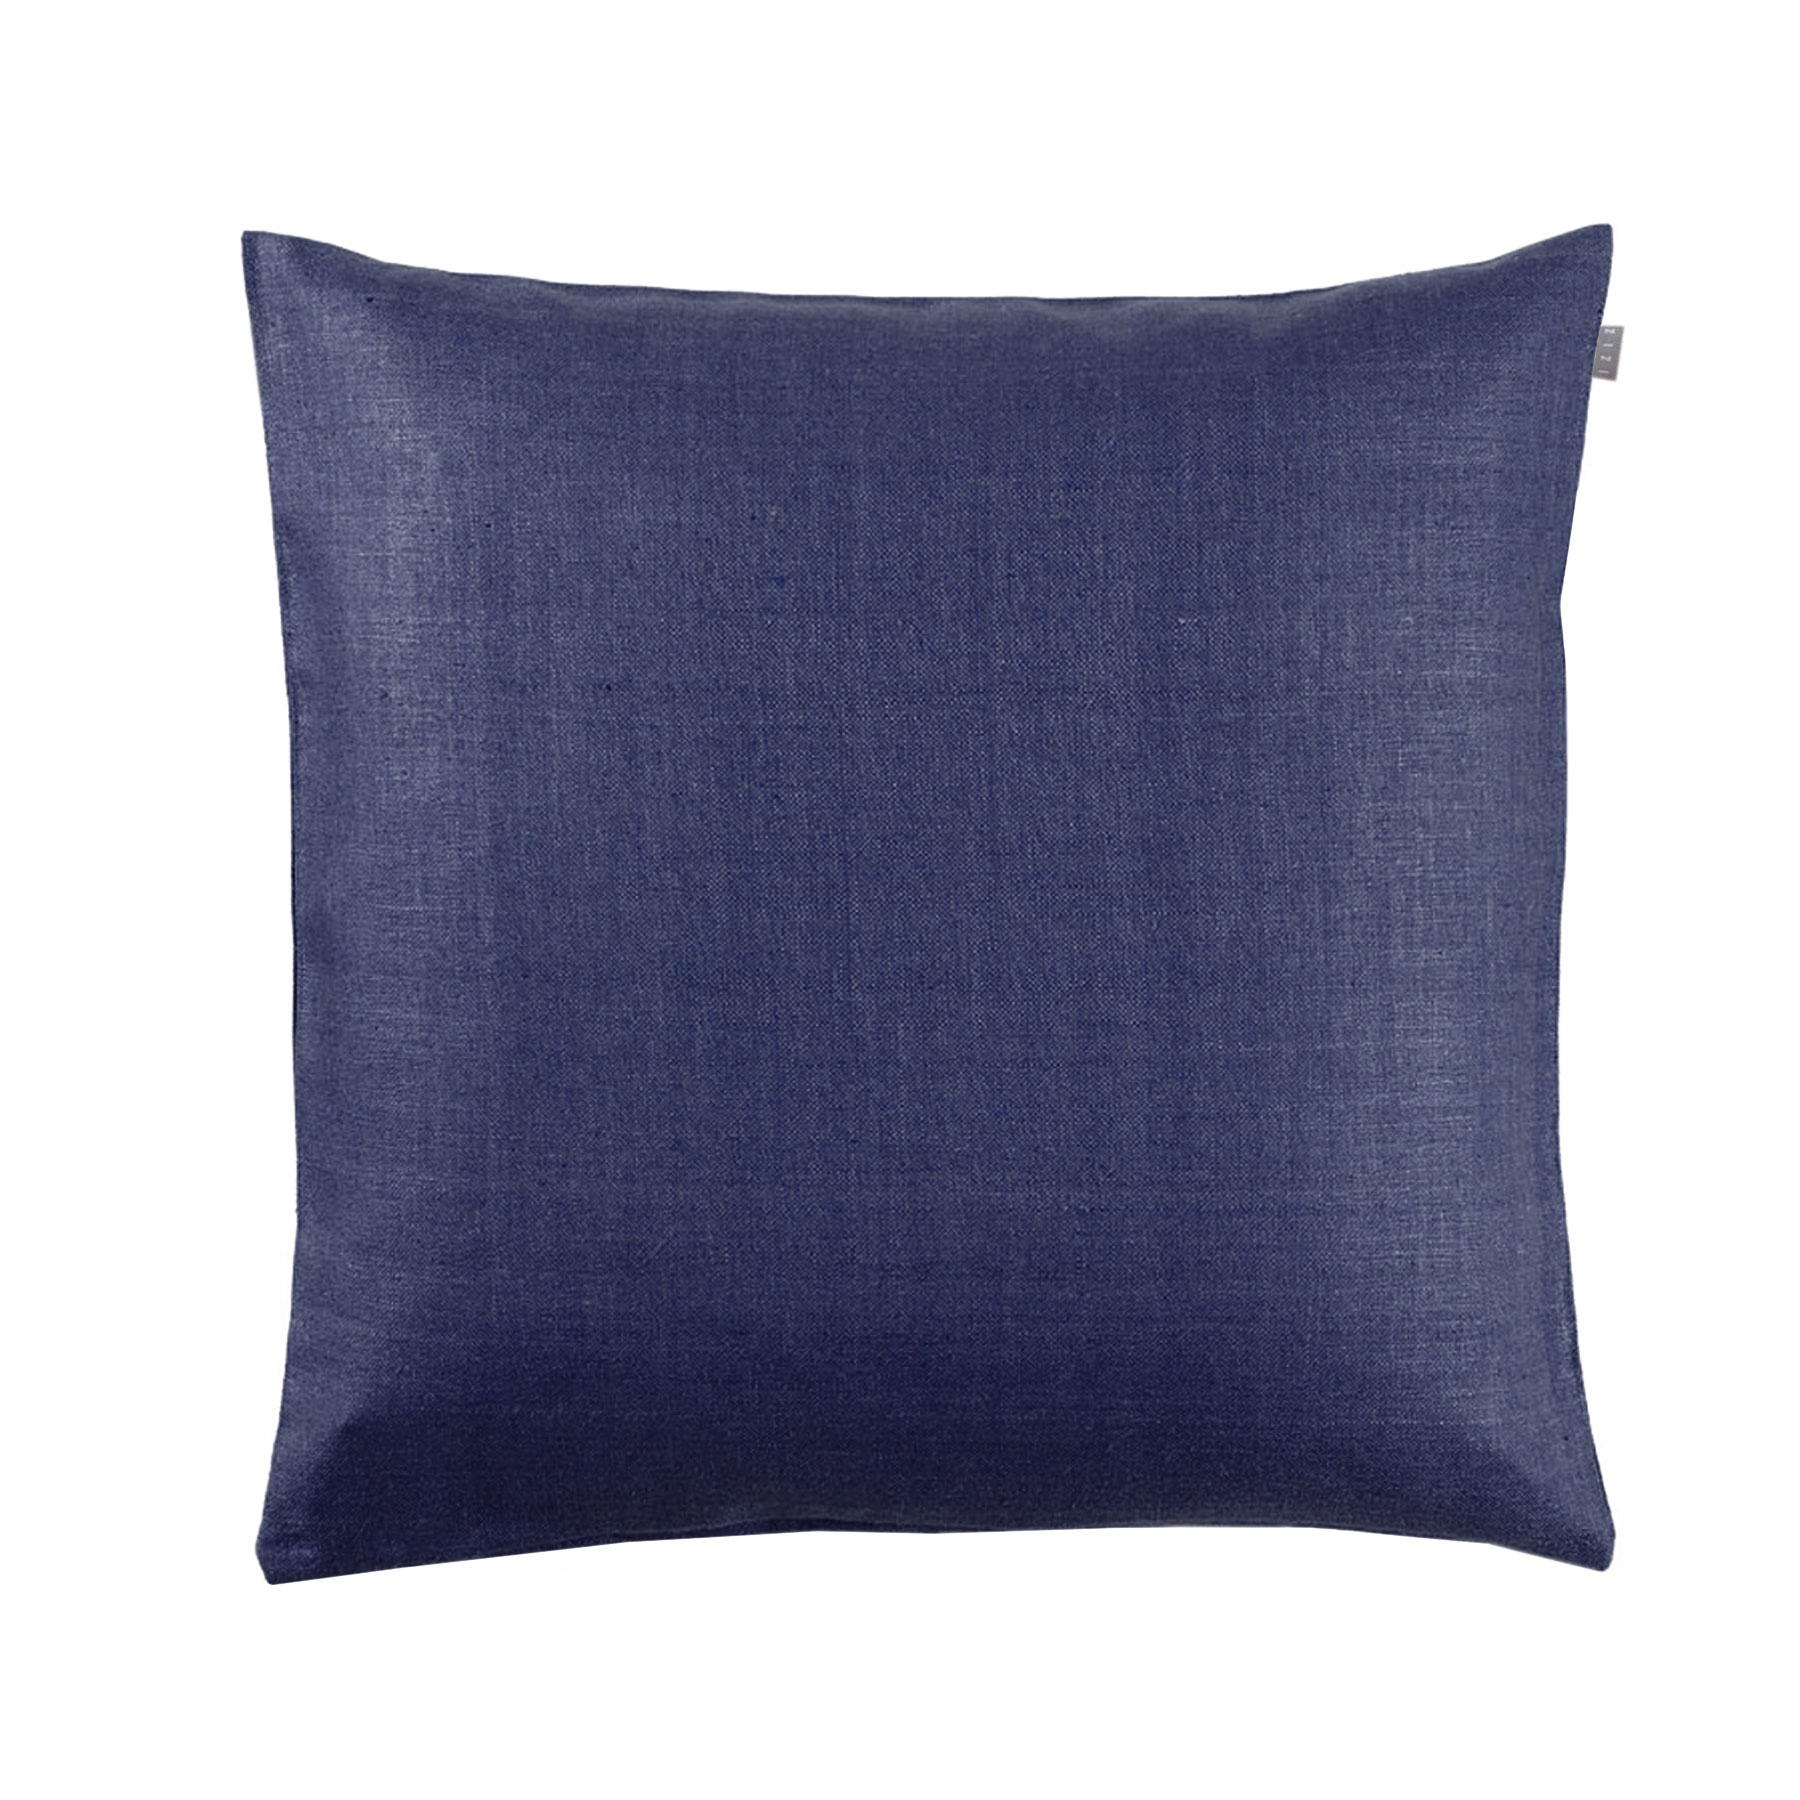 CUSHION COVER PLAIN <br />skipper blue